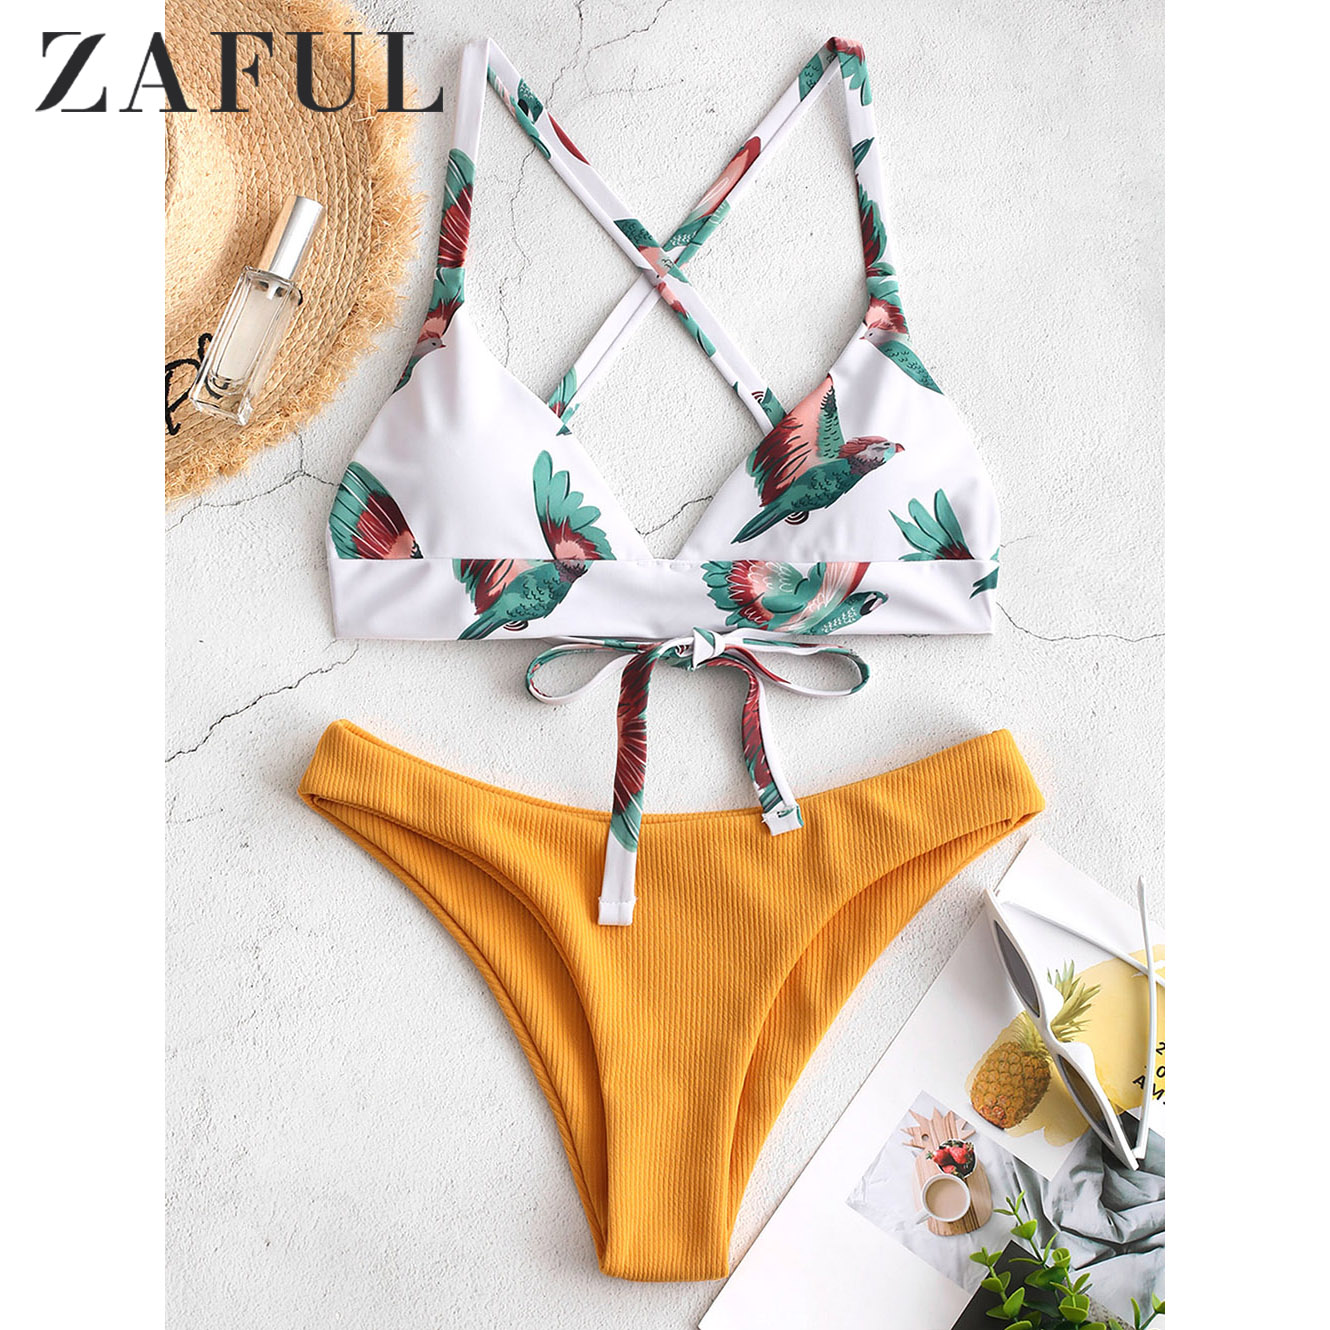 ZAFUL Women Bikini Swimsuit Bird Color Block Criss Cross Bikini Set Lady Sexy Swimwear Summer Beach Bathing Suit